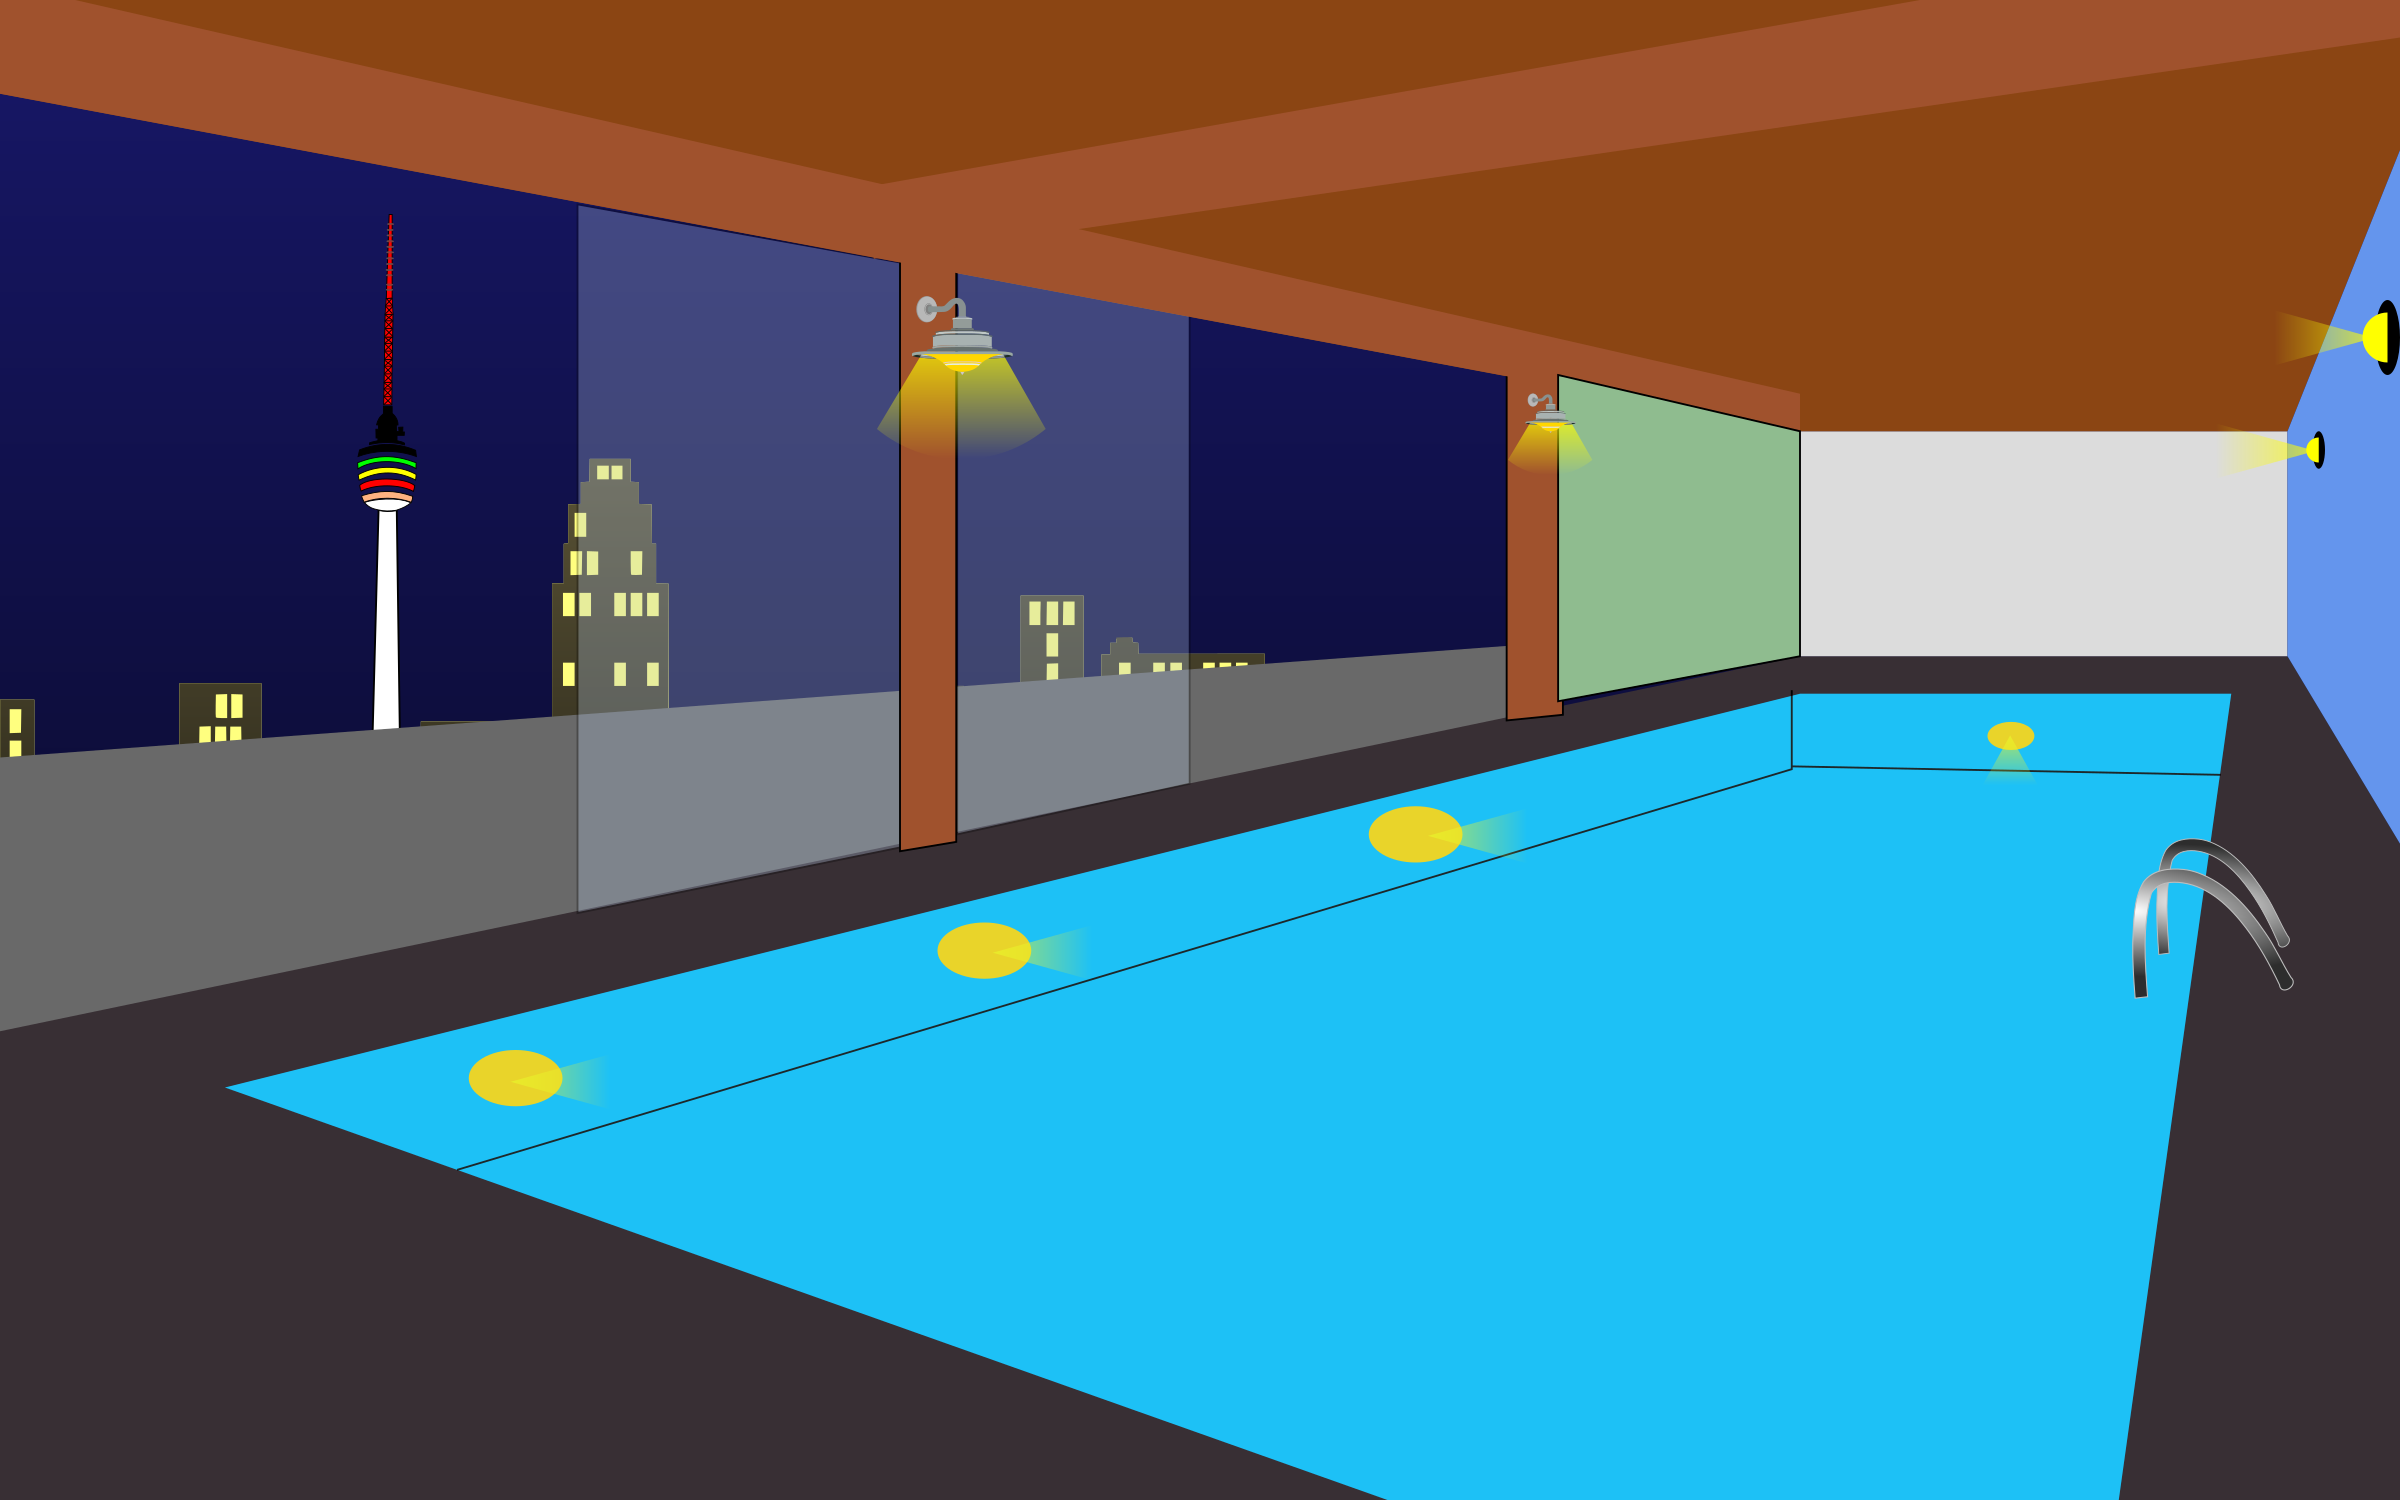 Indoor swimming pool by derkommander0916